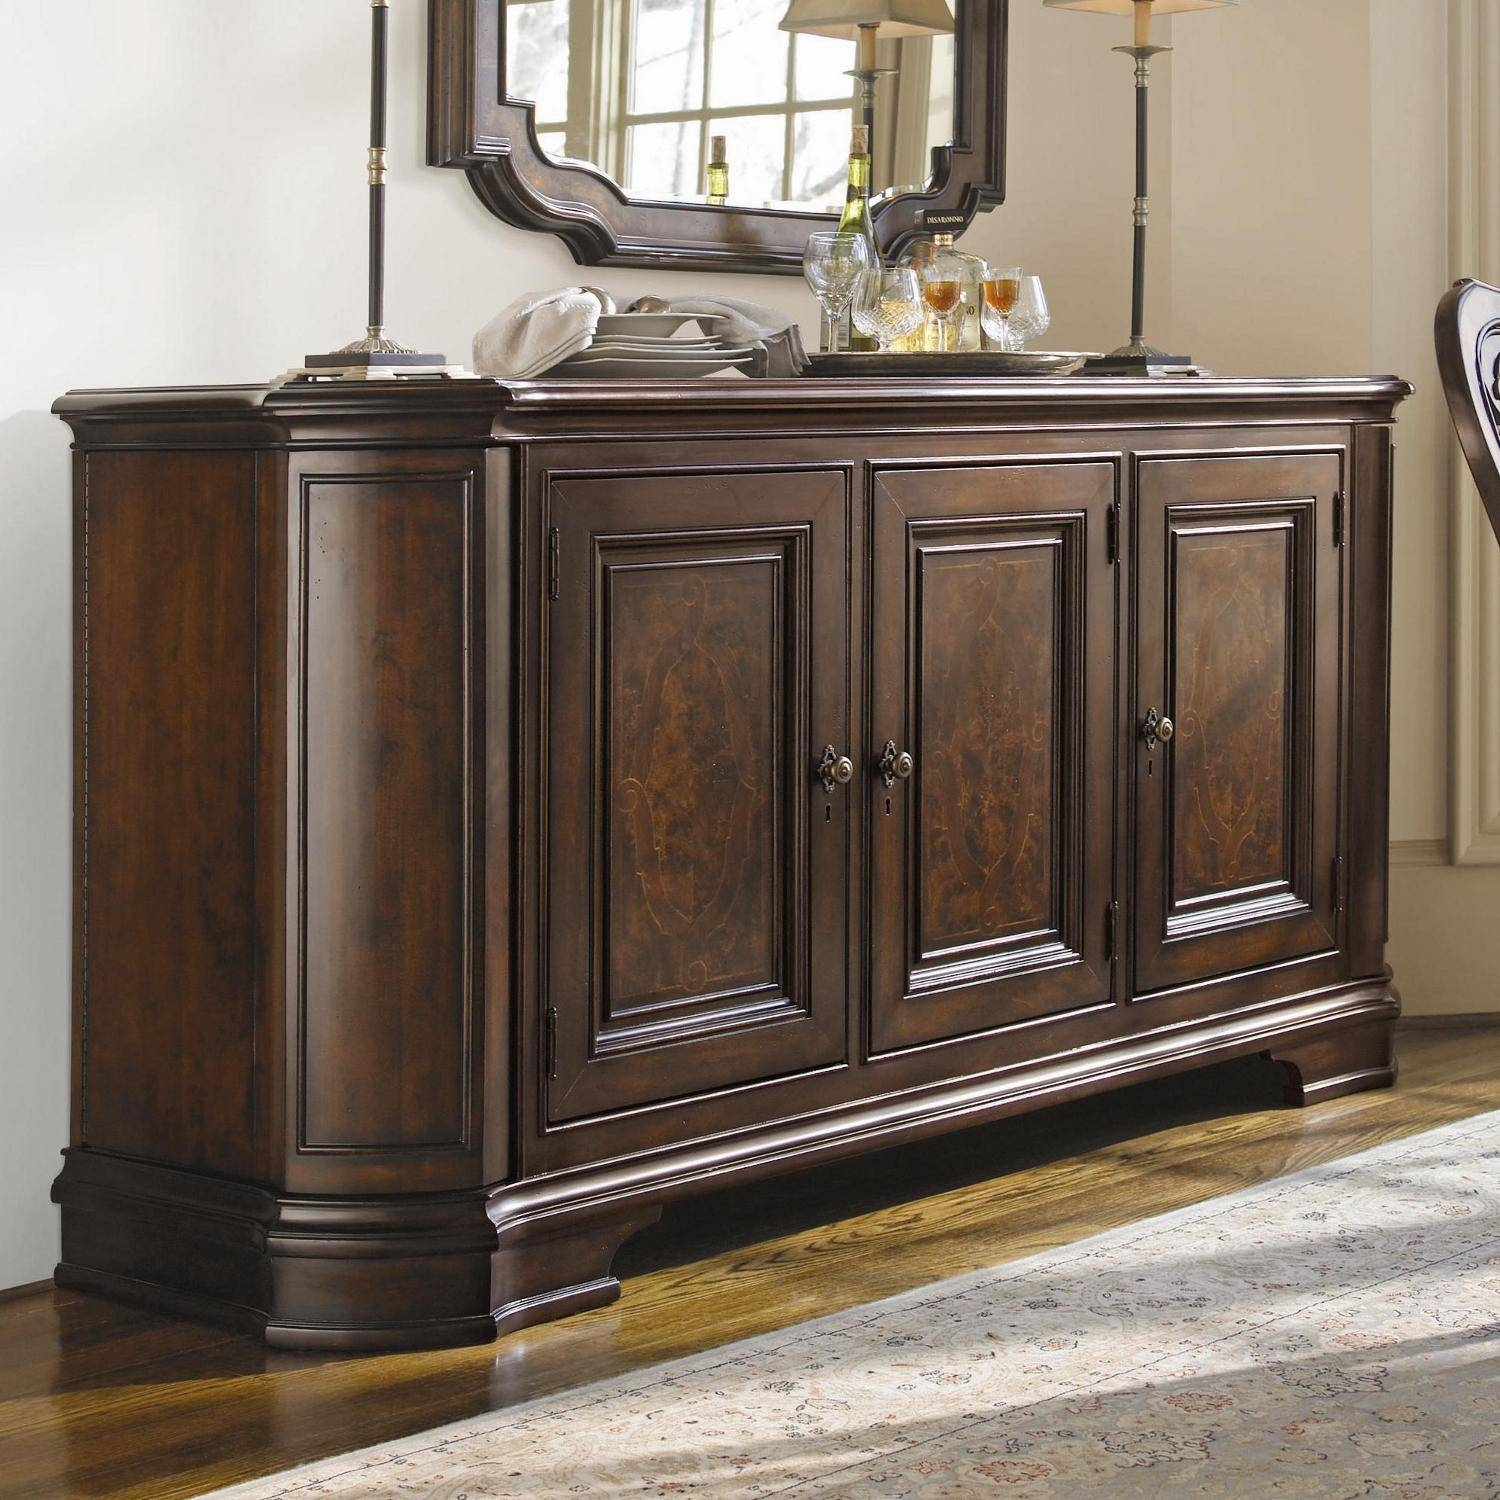 Sideboards. Interesting Dining Room Buffets Sideboards: Dining inside Dark Sideboards Furniture (Image 26 of 30)